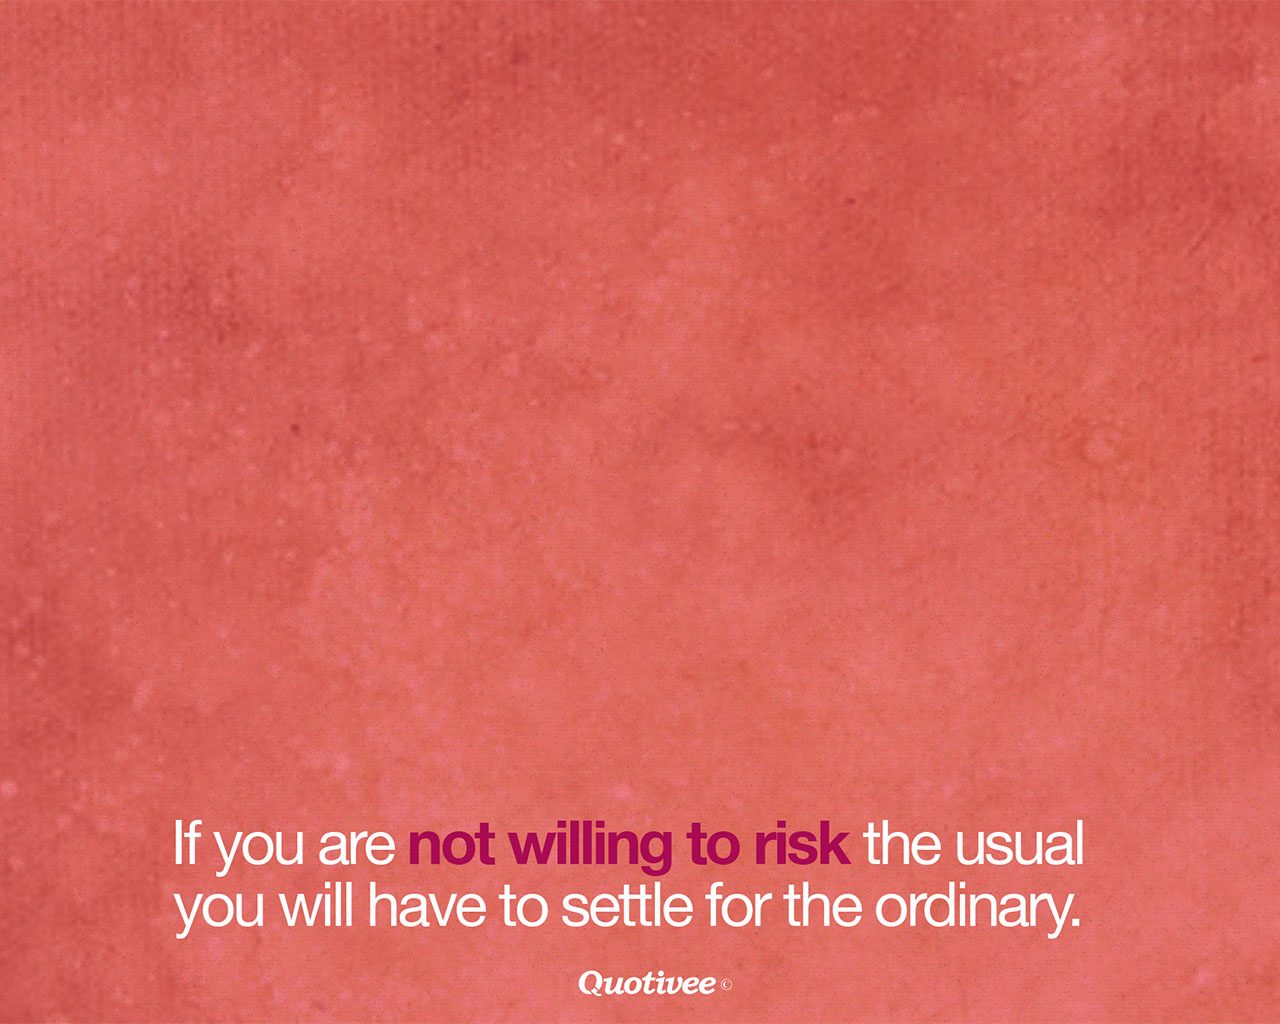 quotivee_1280x1024_0004_If you are not willing to risk the usual you will have to settl